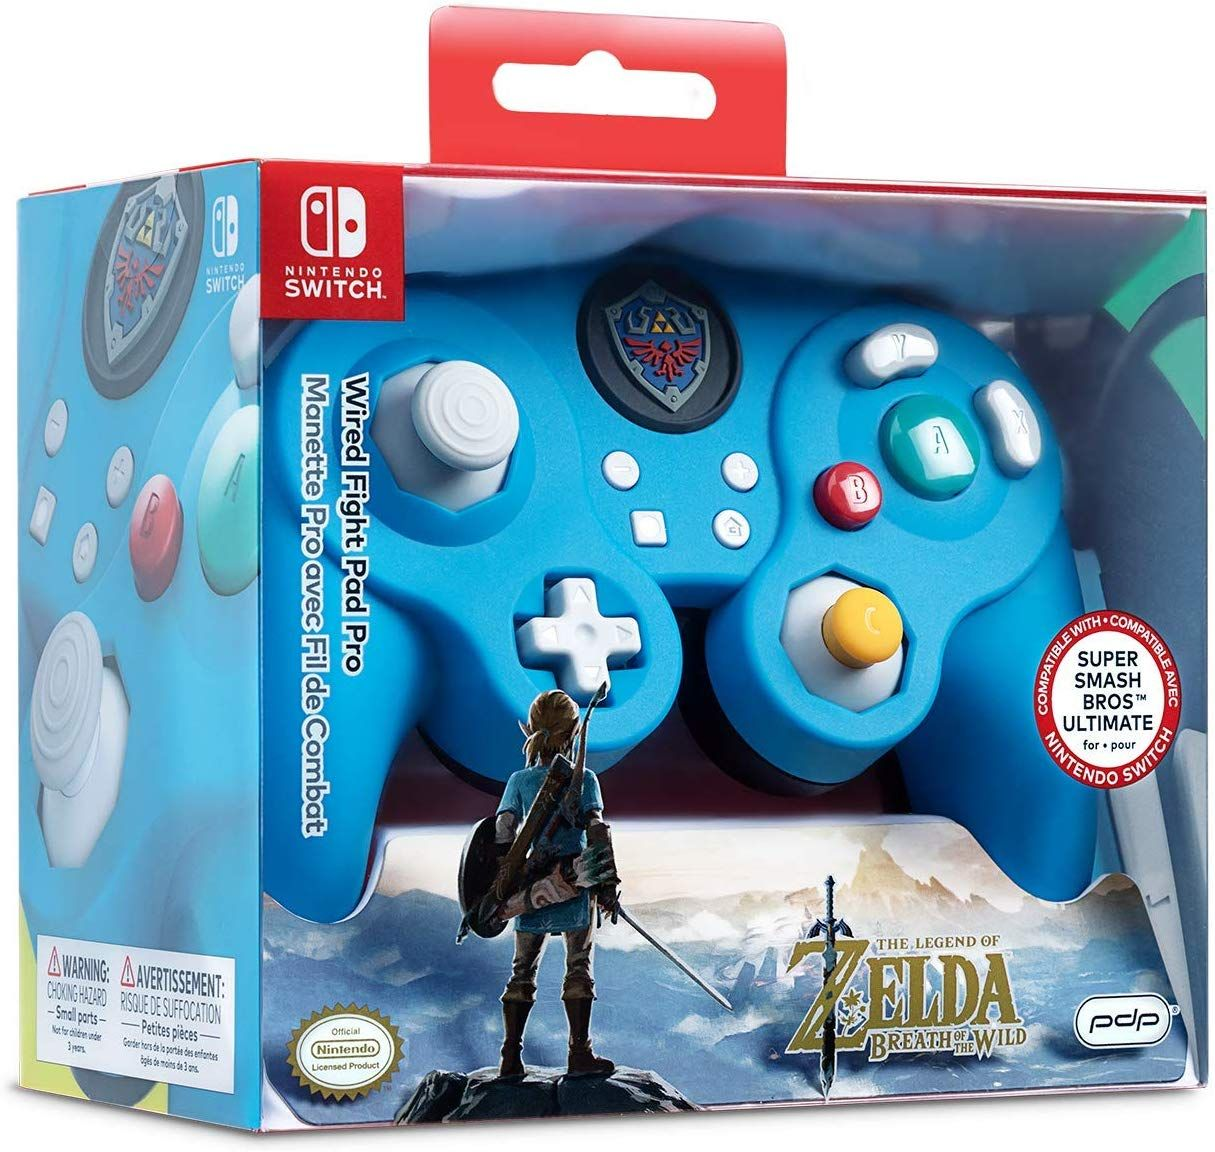 Pdp Nintendo Switch Link Wired Fight Pad Pro 500 100 Nintendo Switch Video Games Nintendo Switch Nintendo Switch Accessories Legend Of Zelda